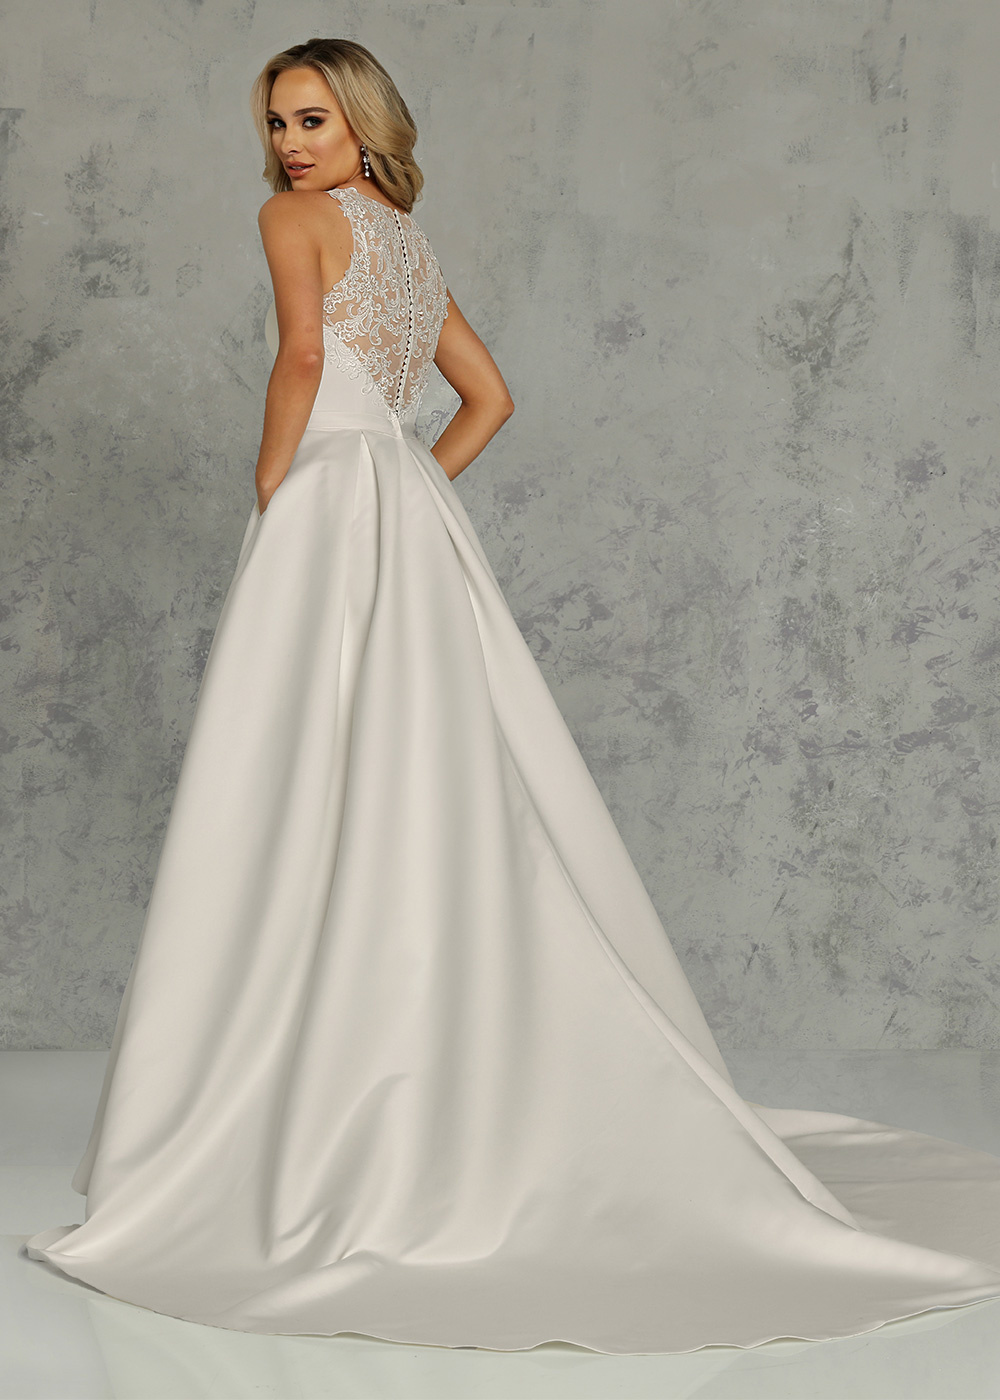 TH-Penelope TH Wedding Dresses By Ashdon